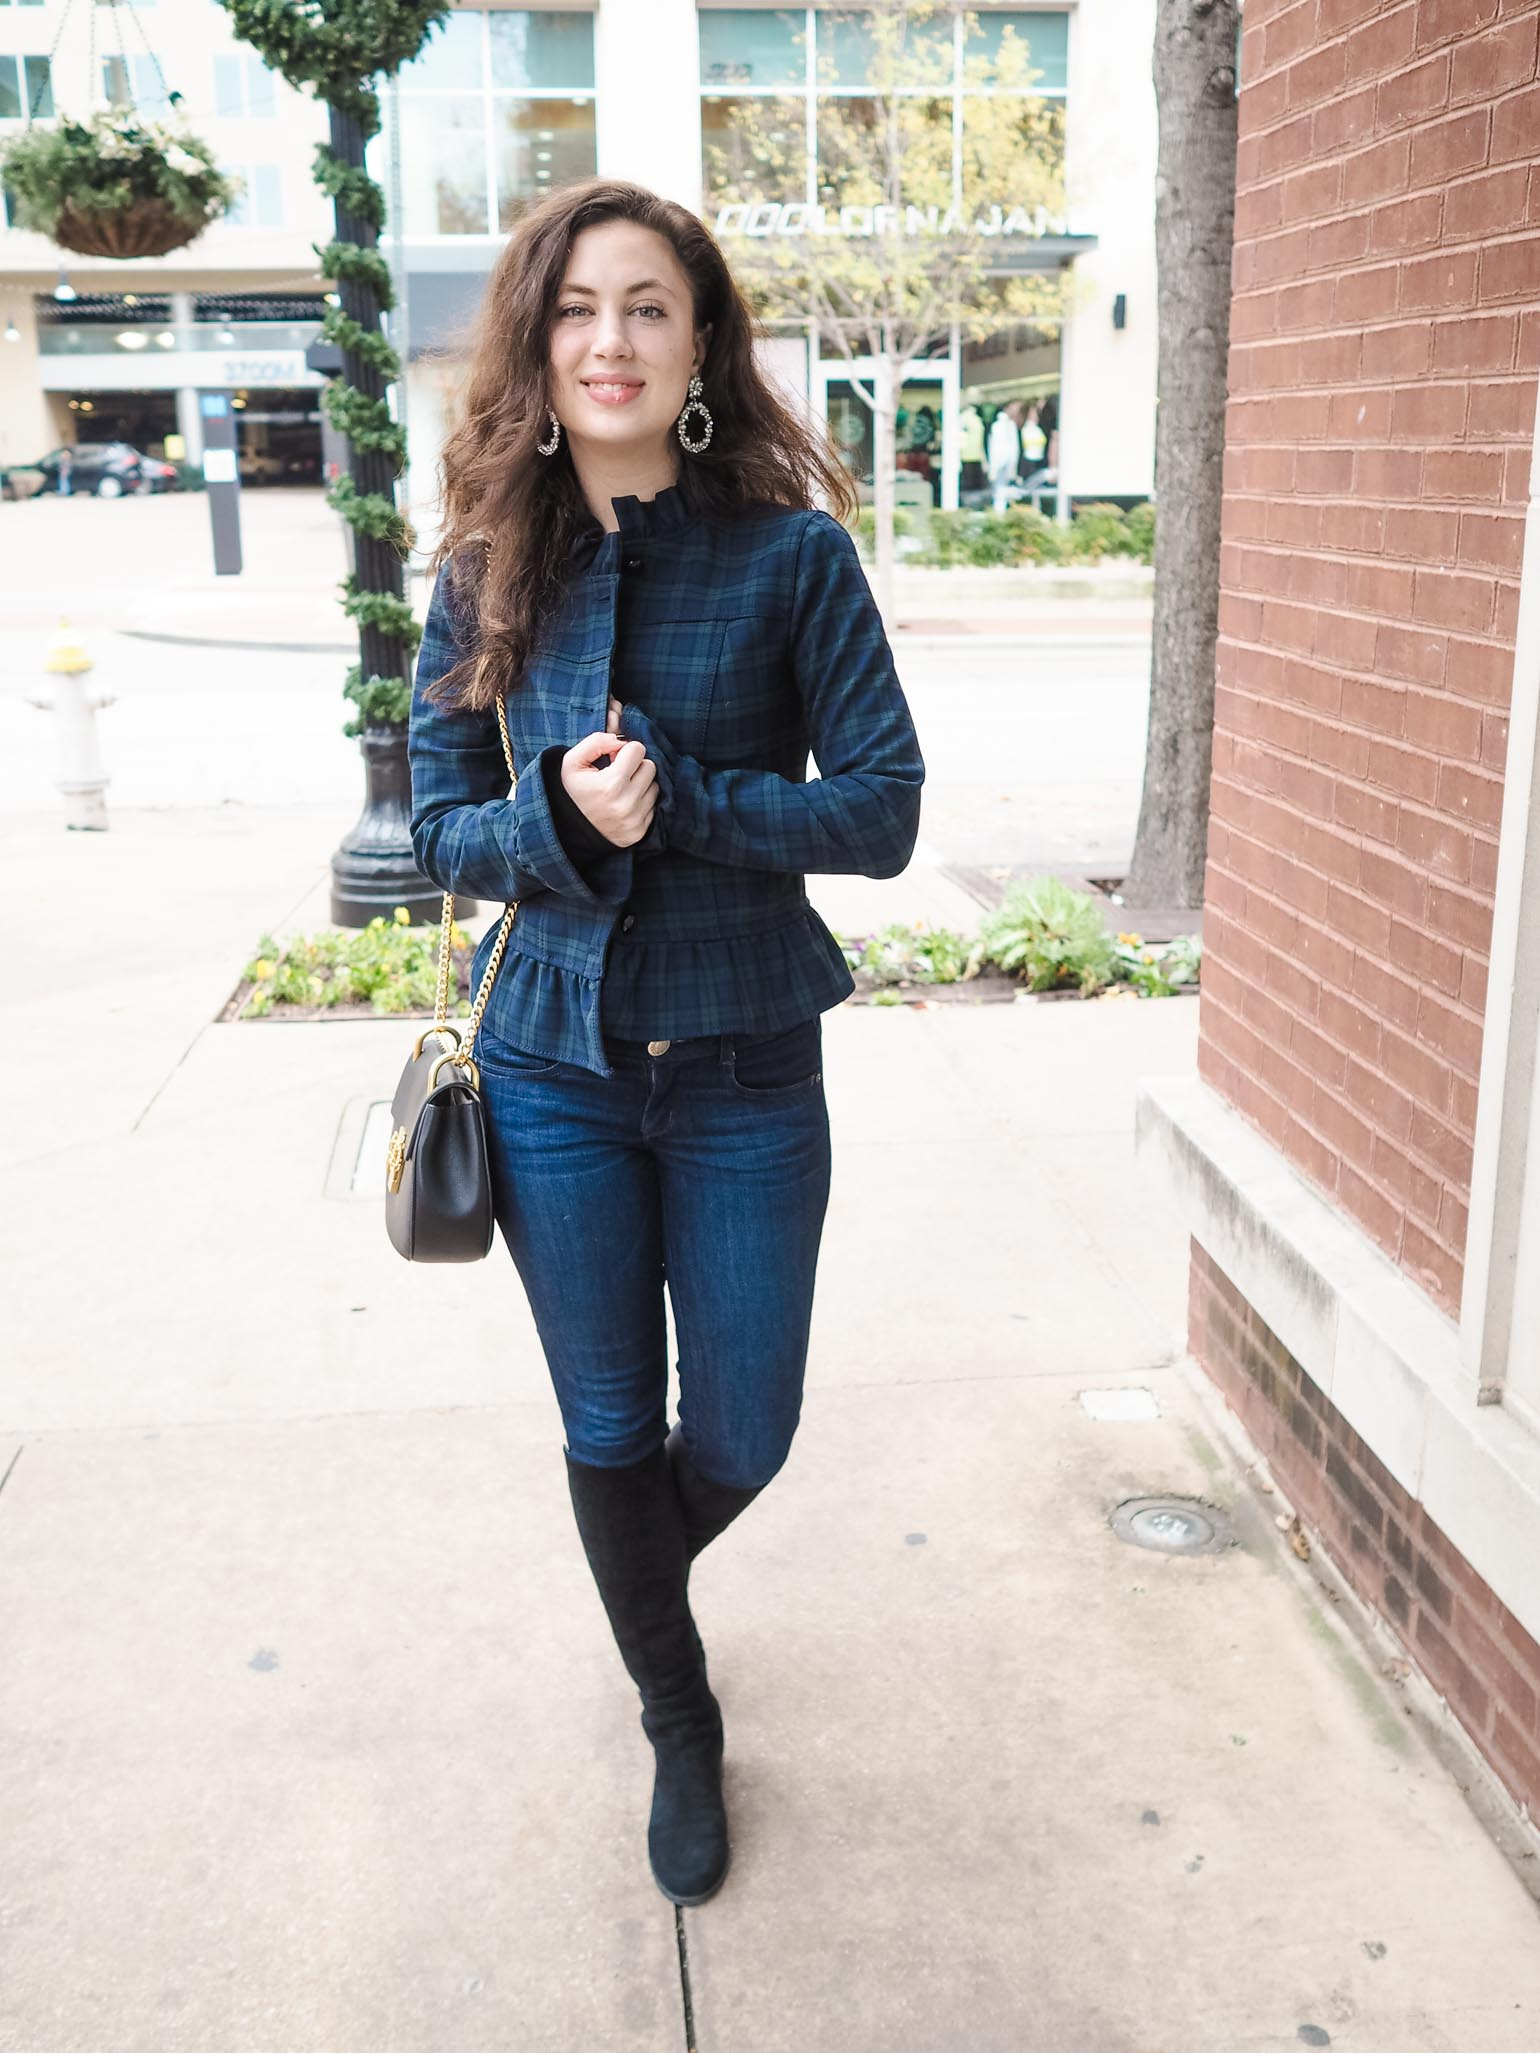 Cristina from The Brunette Nomad, Dallas fashion blogger, shares her ruffled sleeve and plaid jacket from Banana Republic